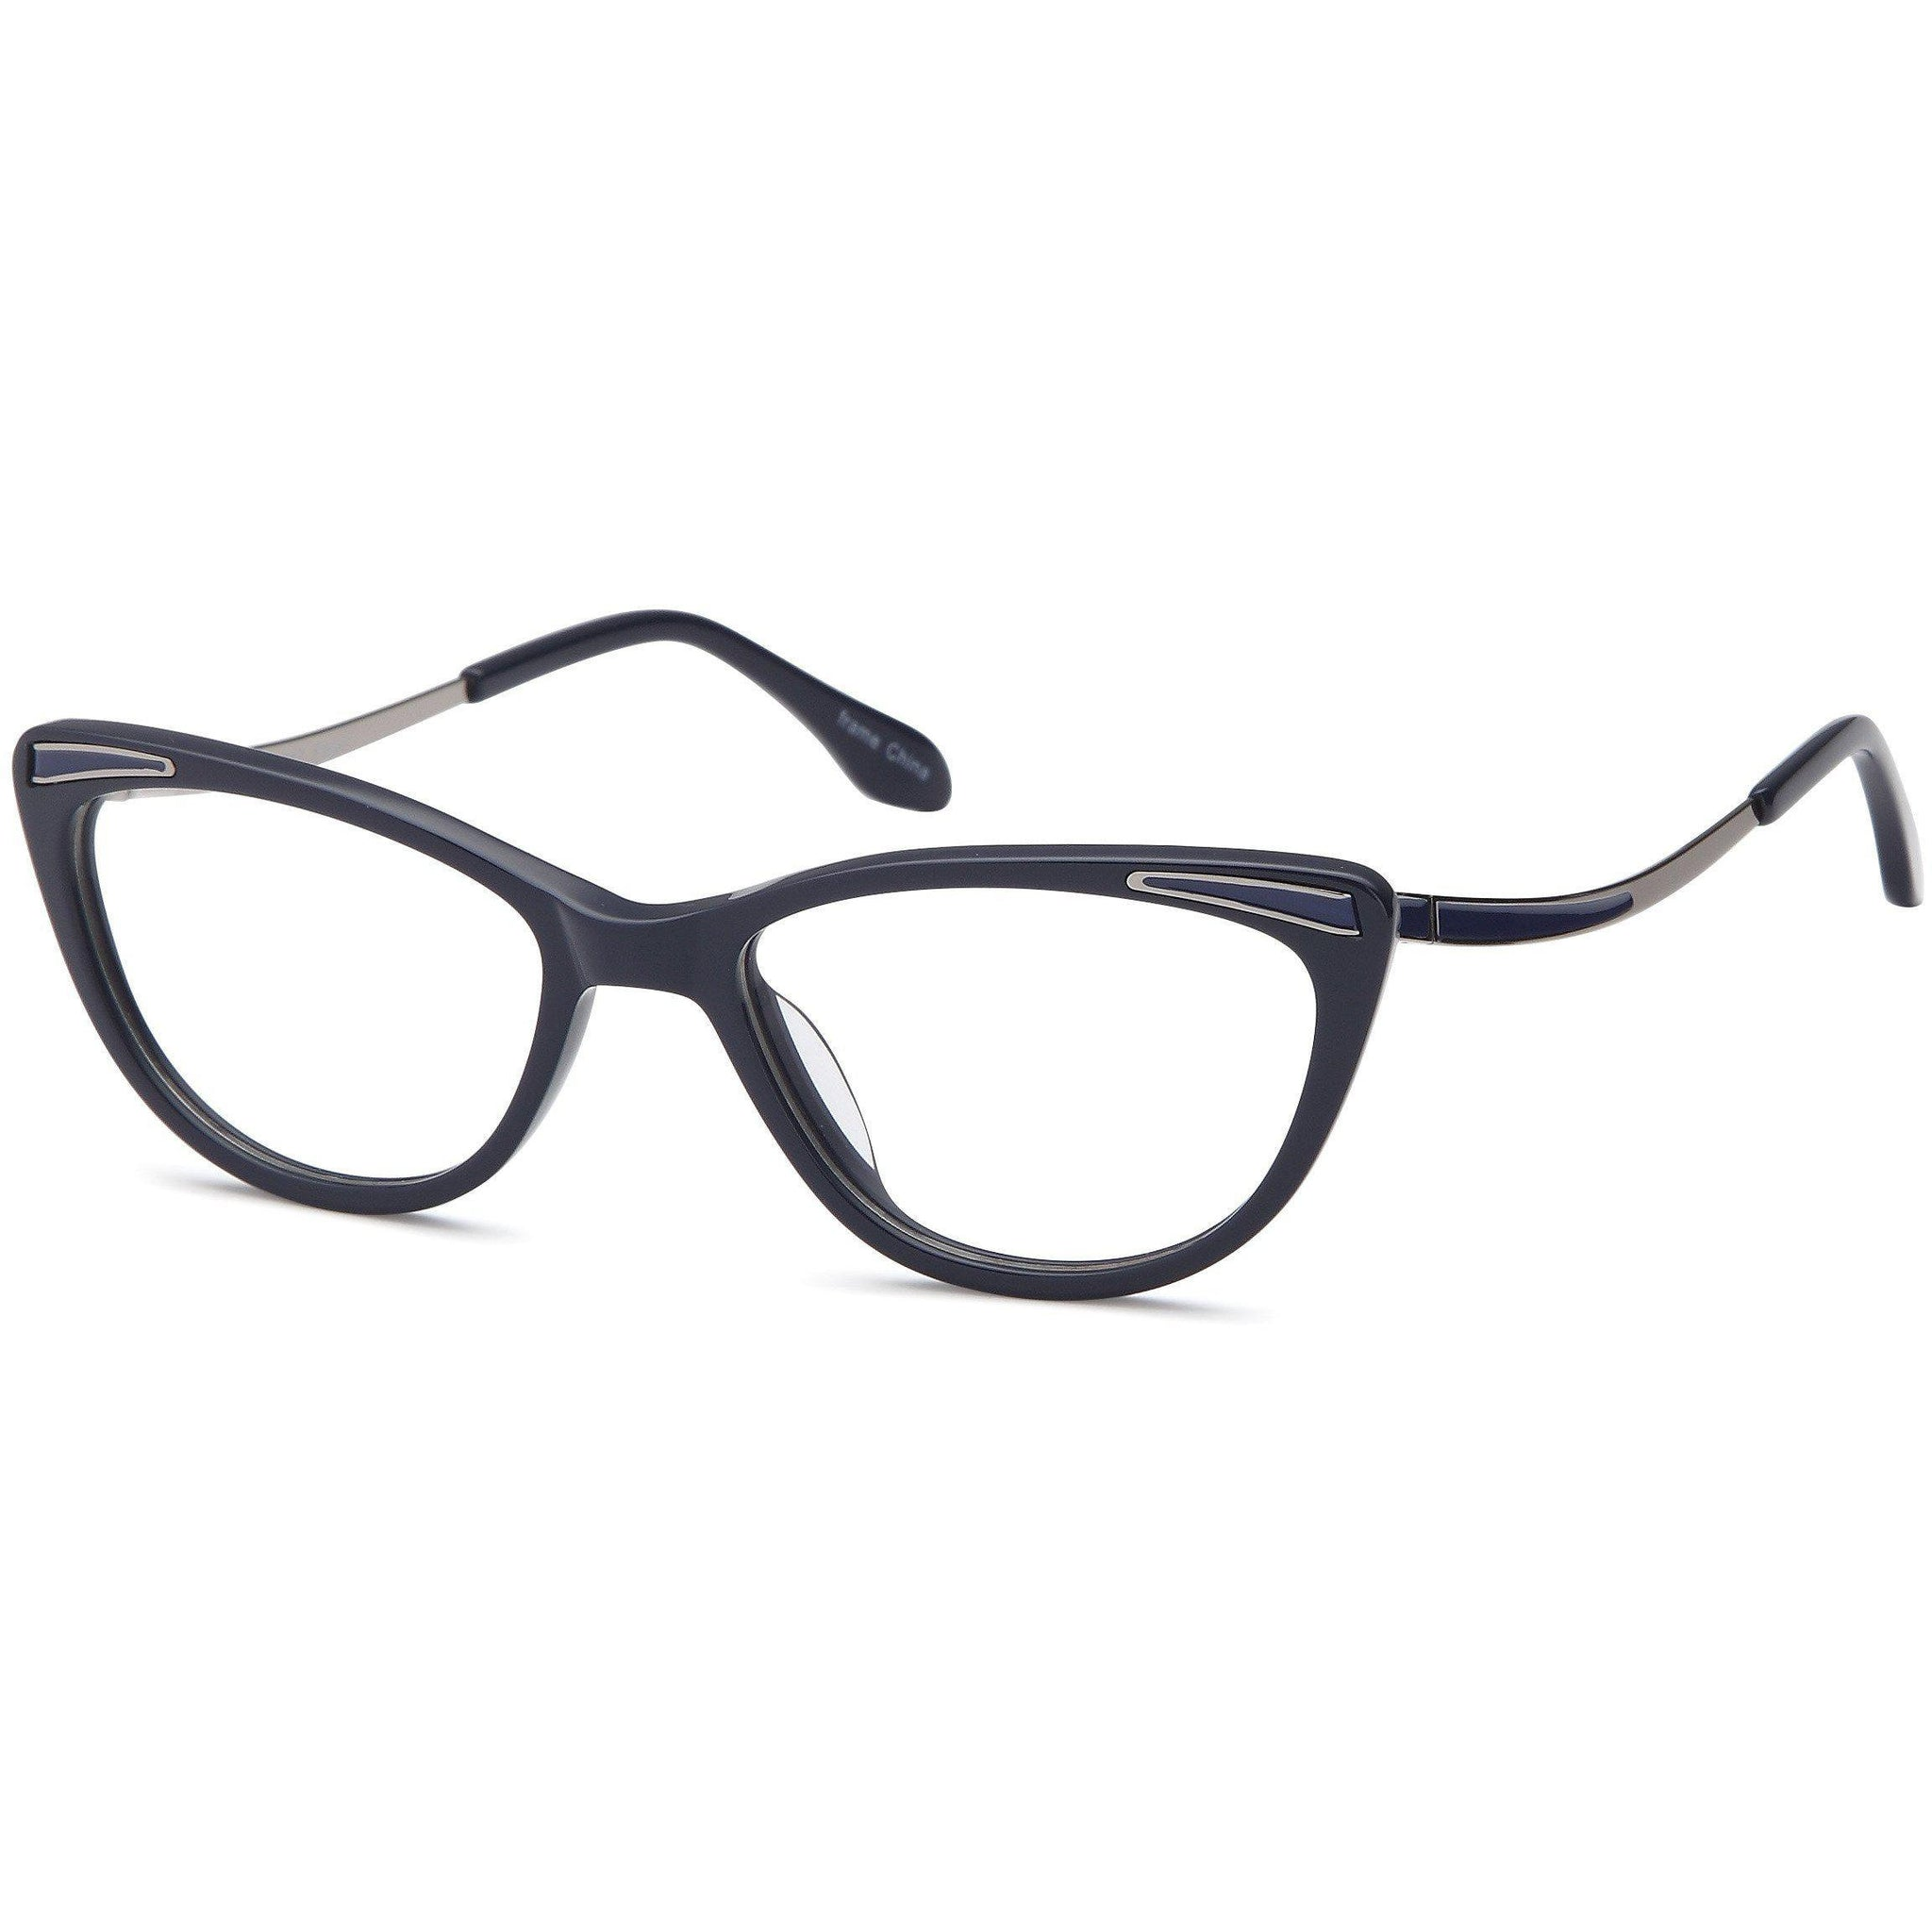 Di Caprio Prescription Glasses DC 317 Eyeglasses Frame - timetoshade